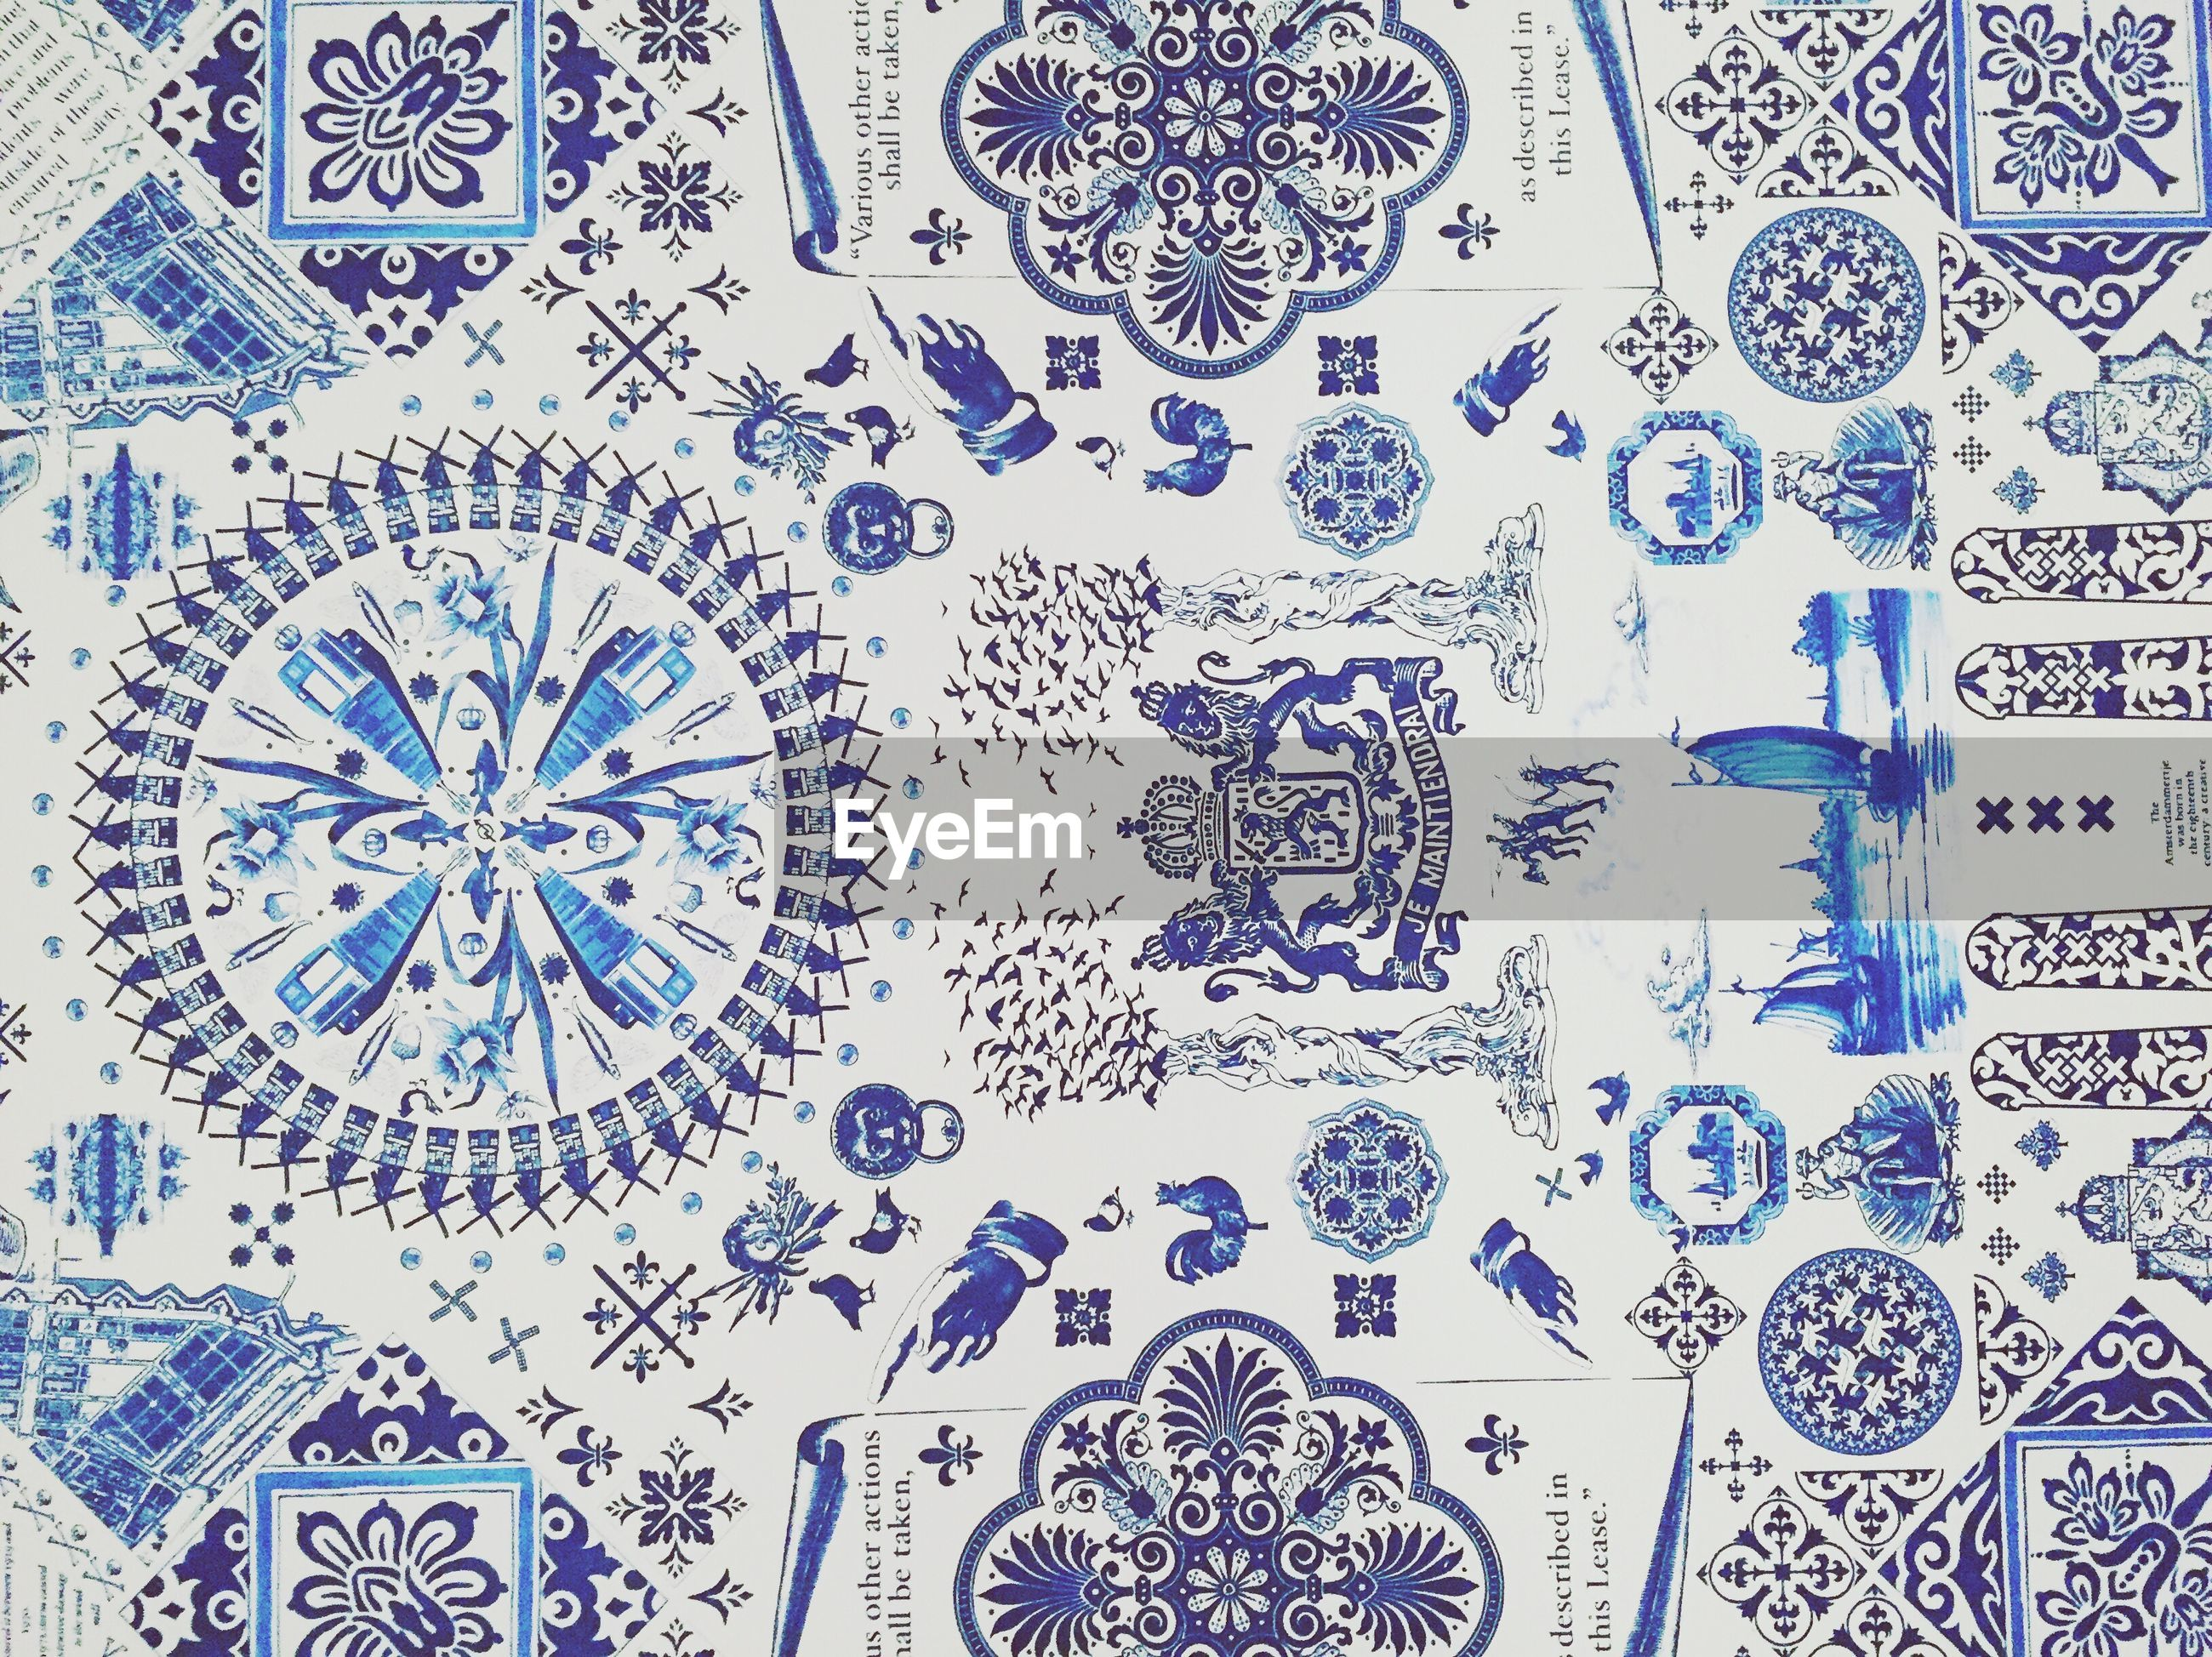 indoors, pattern, design, ceiling, full frame, backgrounds, art and craft, creativity, art, wall - building feature, floral pattern, geometric shape, circle, flooring, built structure, ornate, architecture, tile, wall, tiled floor